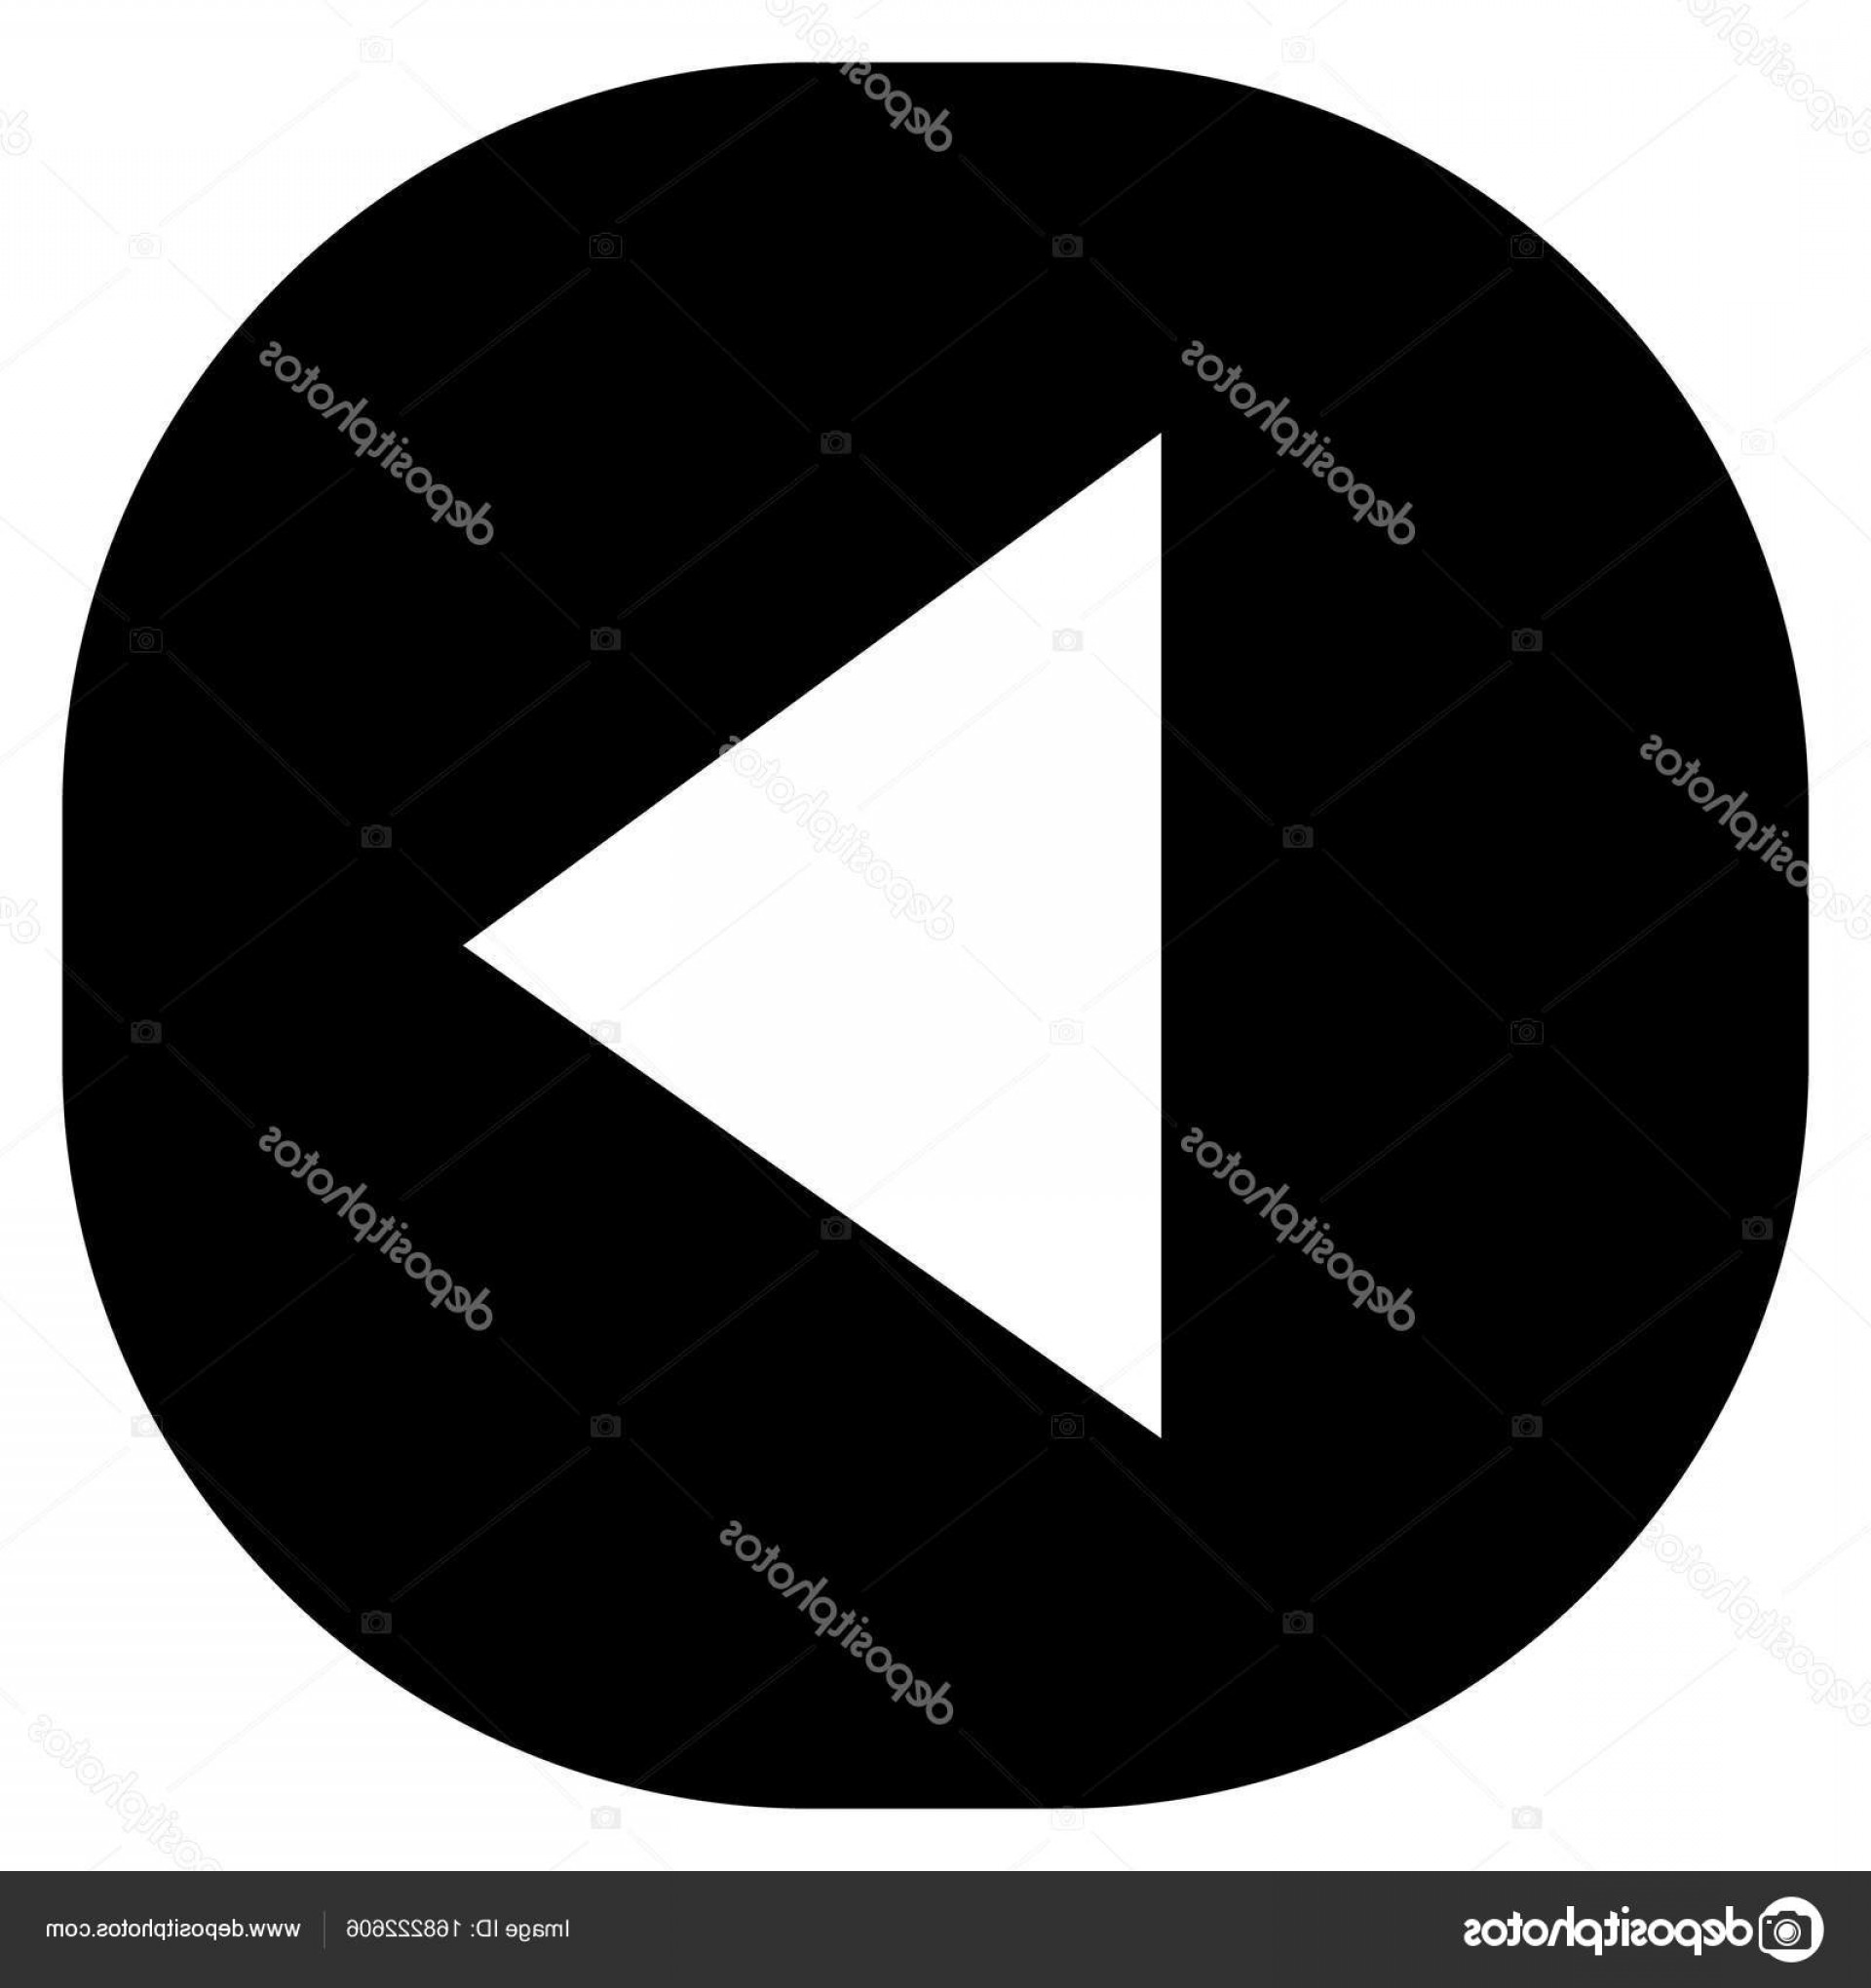 1920x2040 Stock Illustration Modern Black Round Square Youtube Arenawp